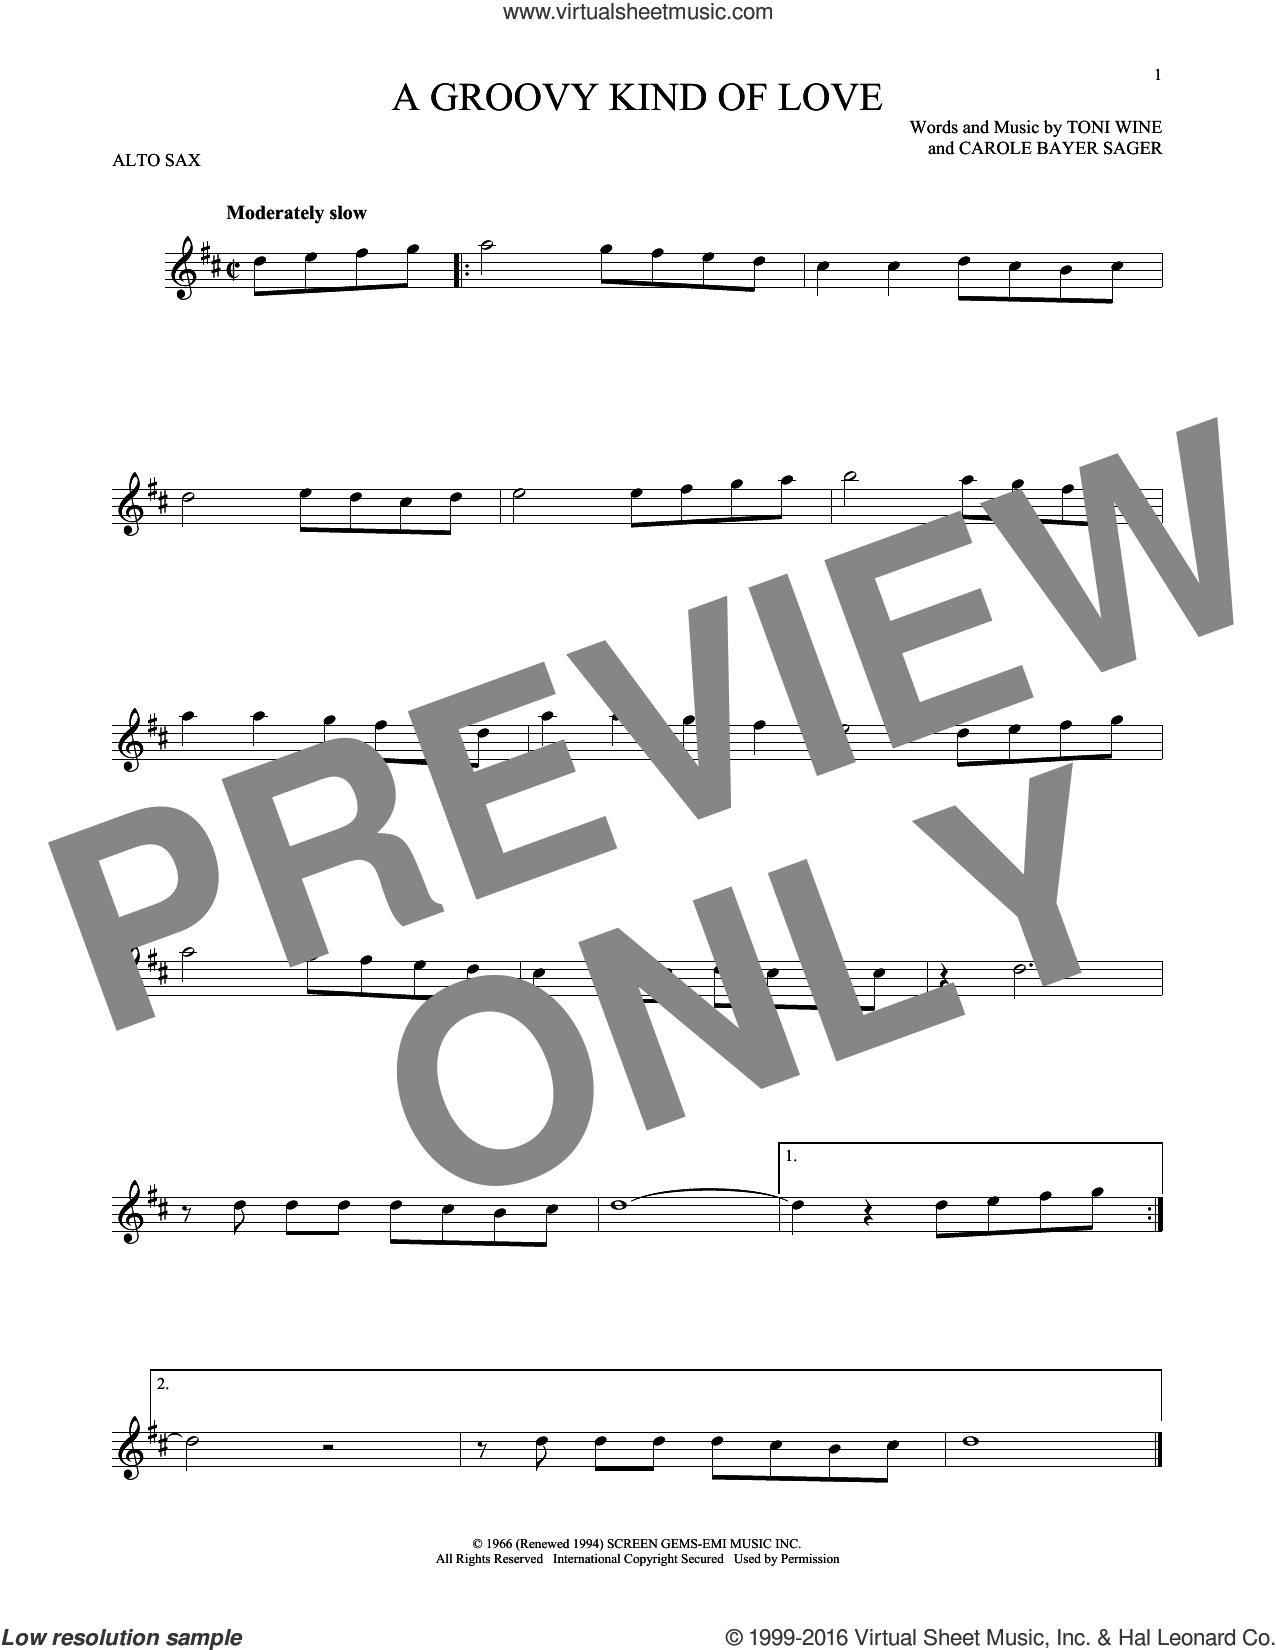 A Groovy Kind Of Love sheet music for alto saxophone solo by Phil Collins, The Mindbenders, Carole Bayer Sager and Toni Wine, intermediate skill level